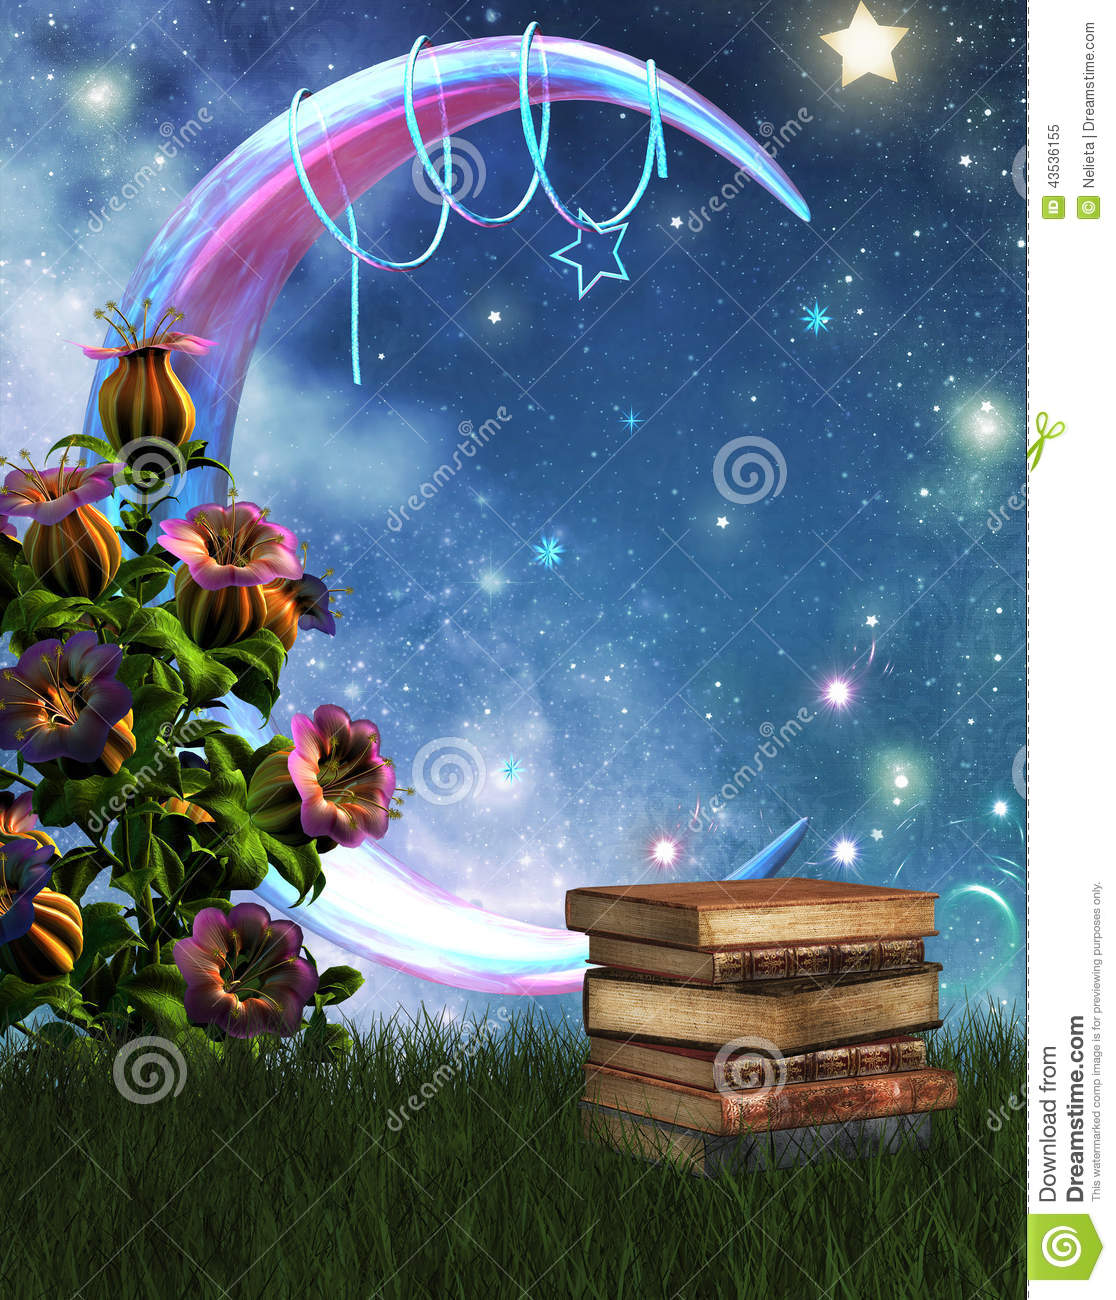 Fantasy Garden And Books